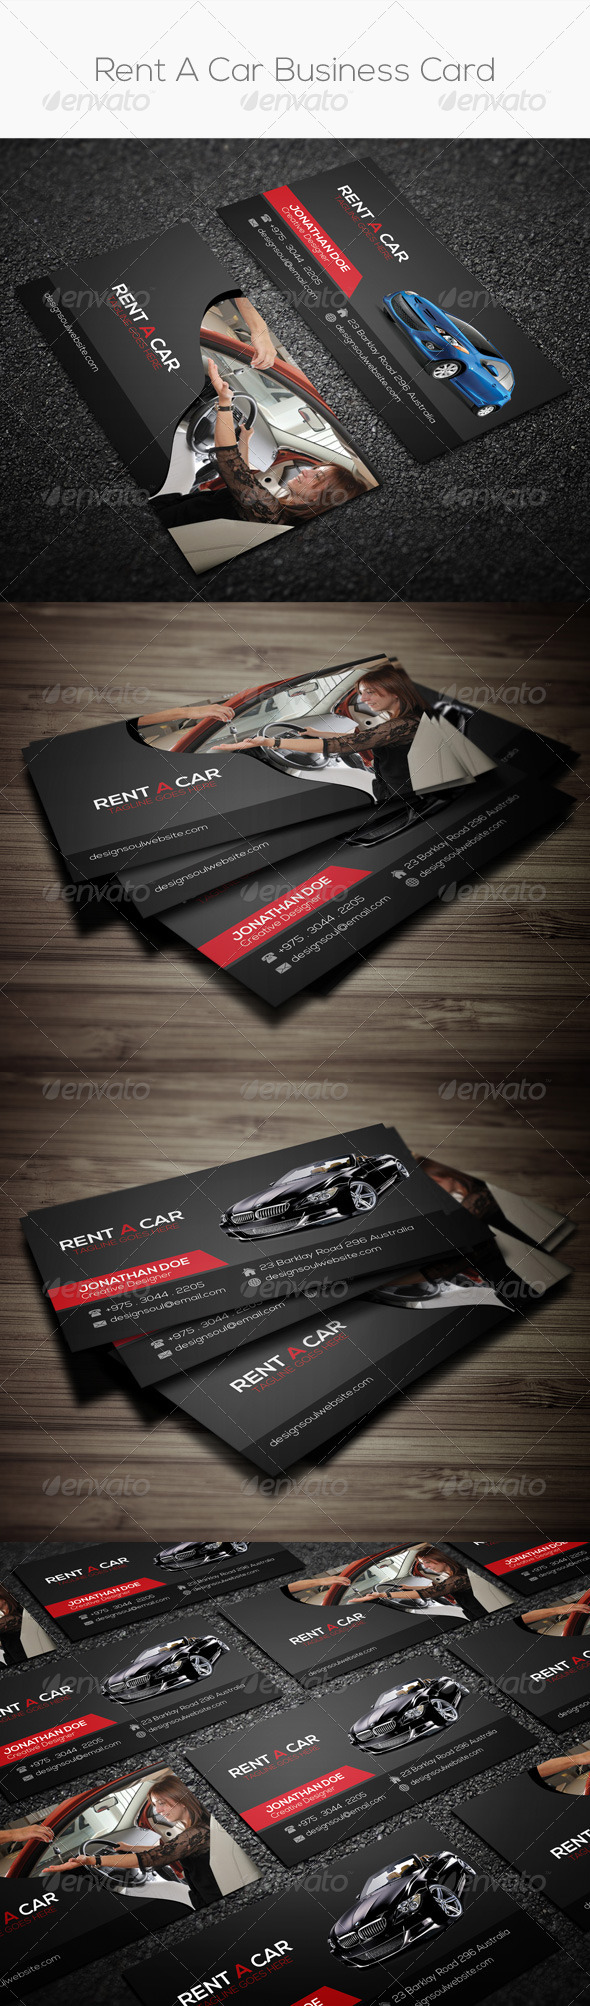 GraphicRiver Rent A Car Business Card 8107759